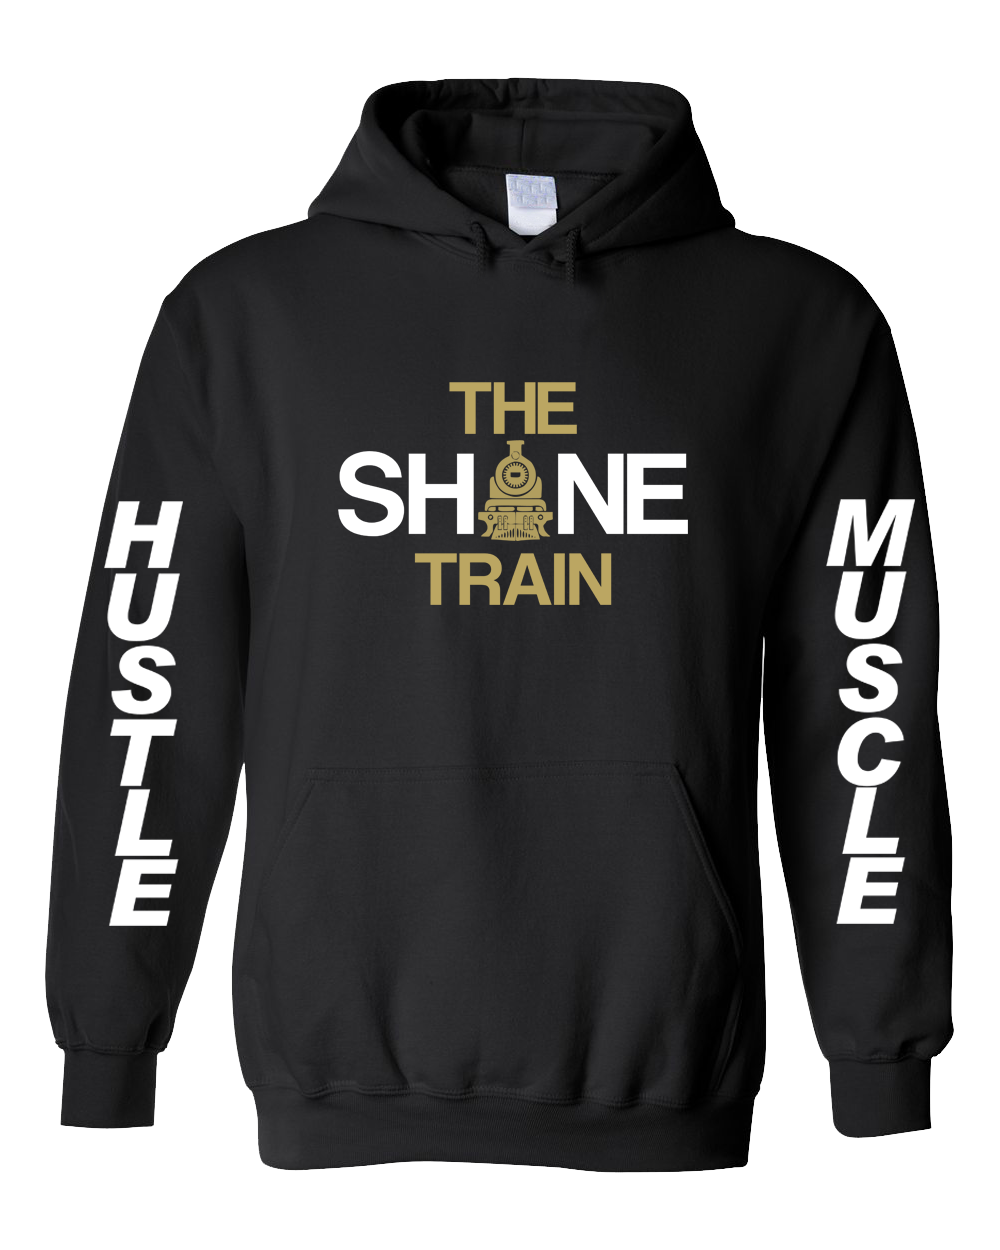 The Shane Train Hoodie